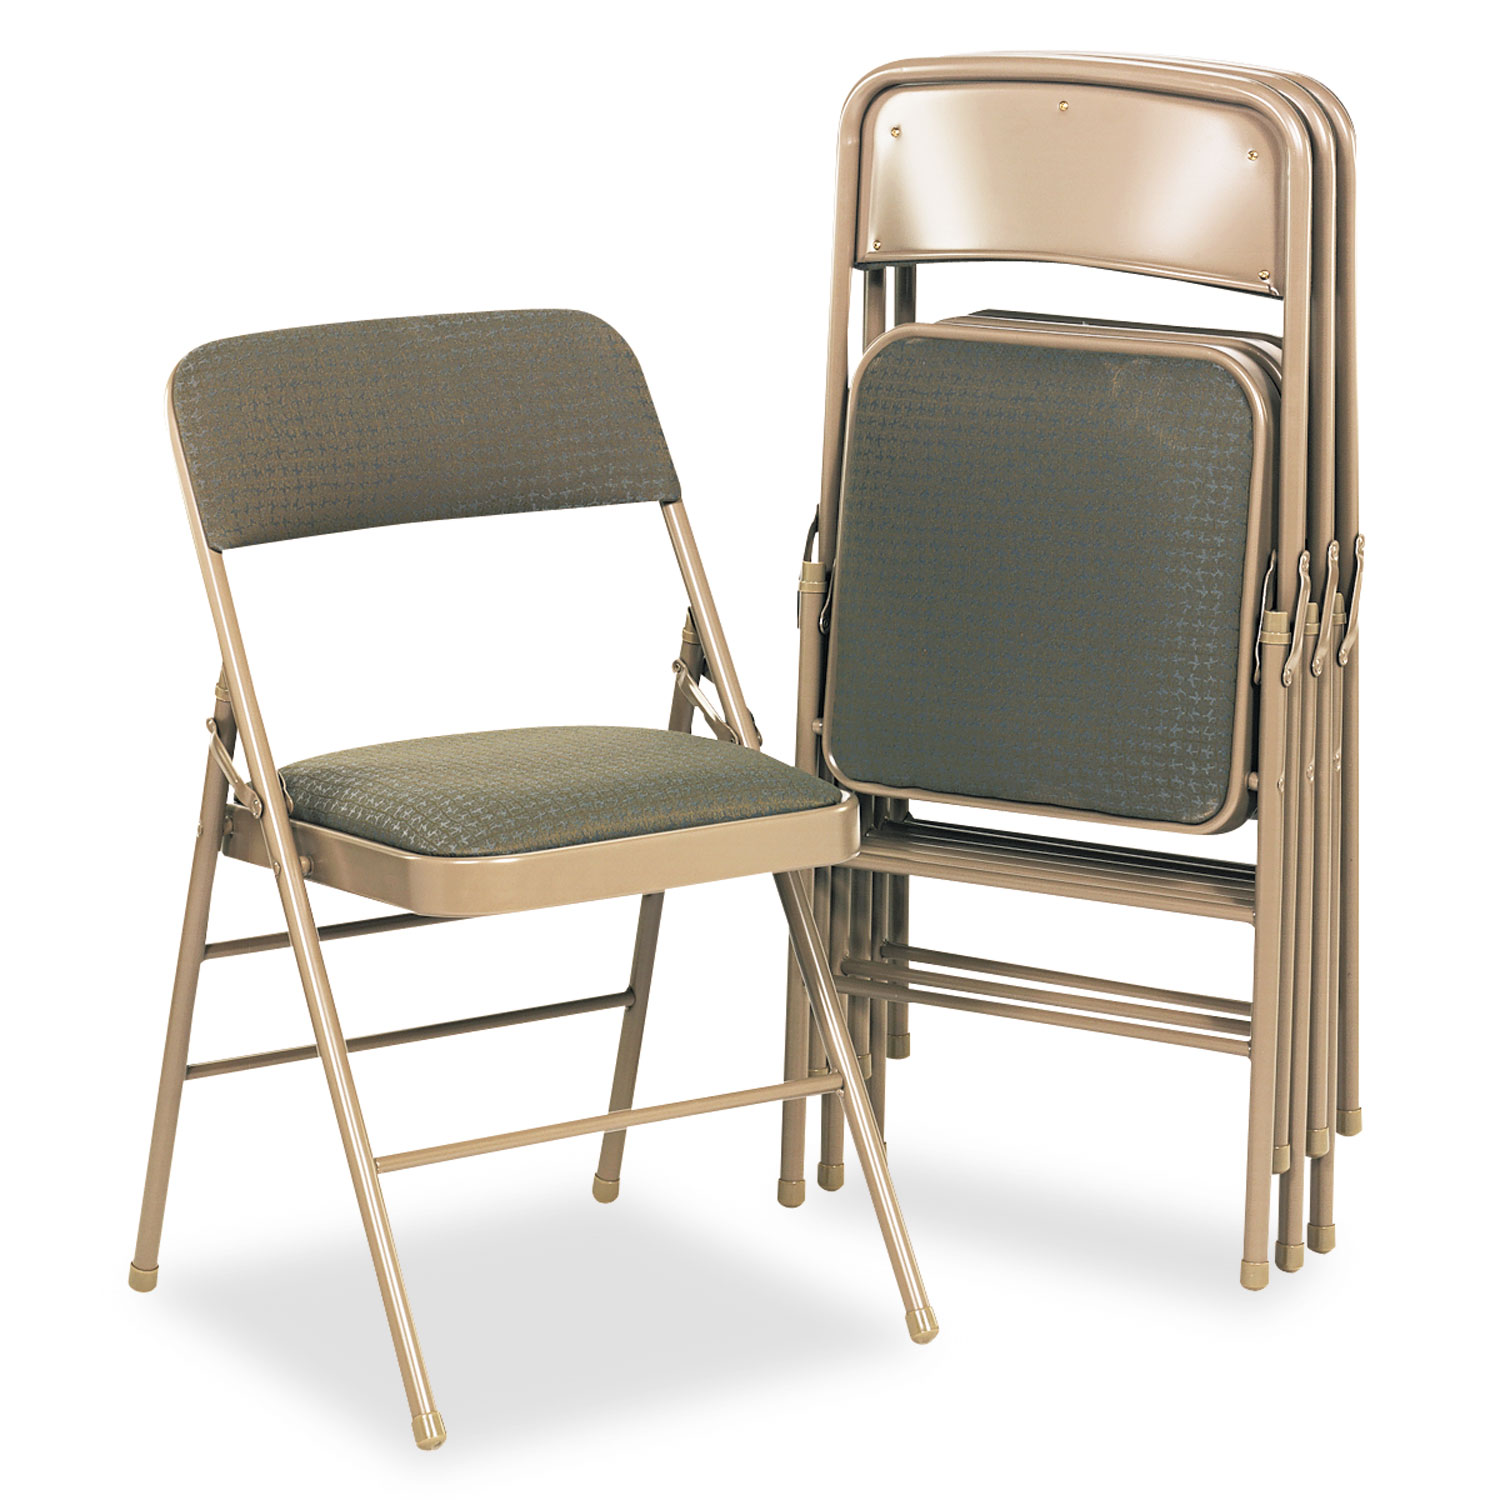 cloth padded folding chairs walmart table and deluxe fabric seat back by cosco